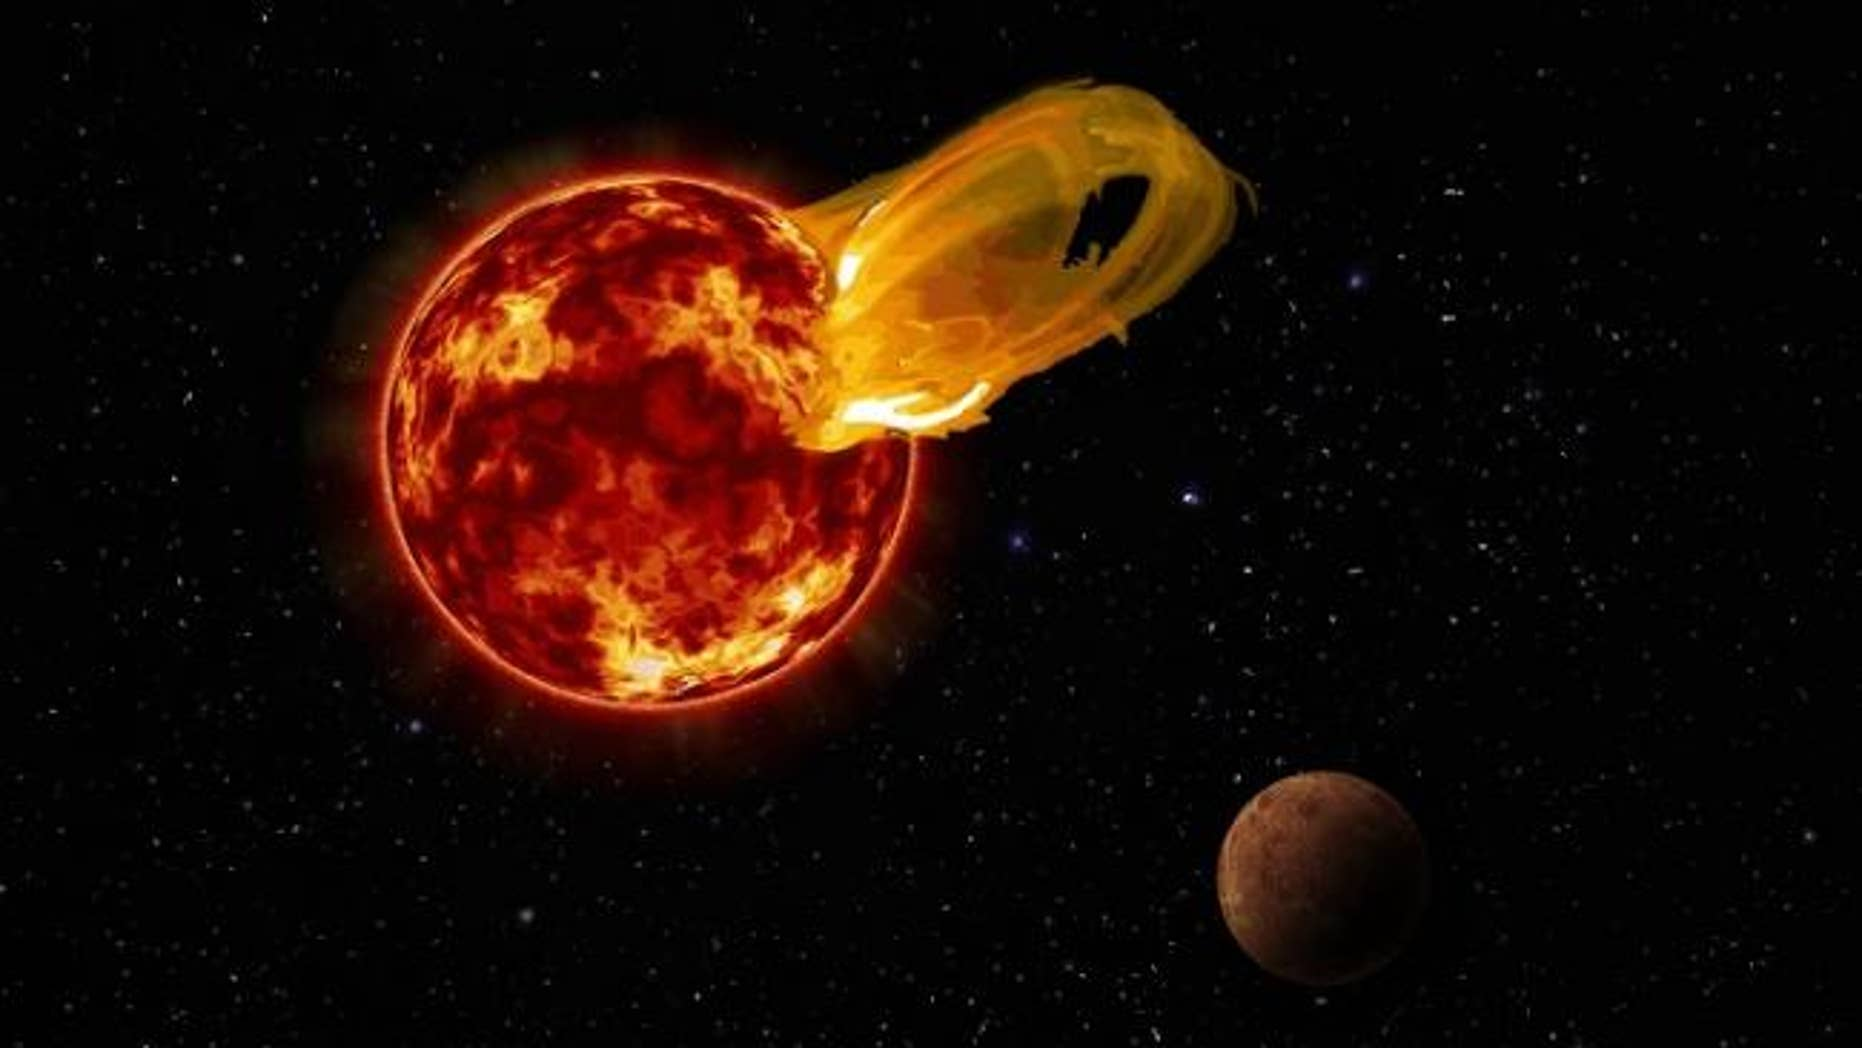 Artist's illustration of a powerful flare erupting from the red dwarf star Proxima Centauri.